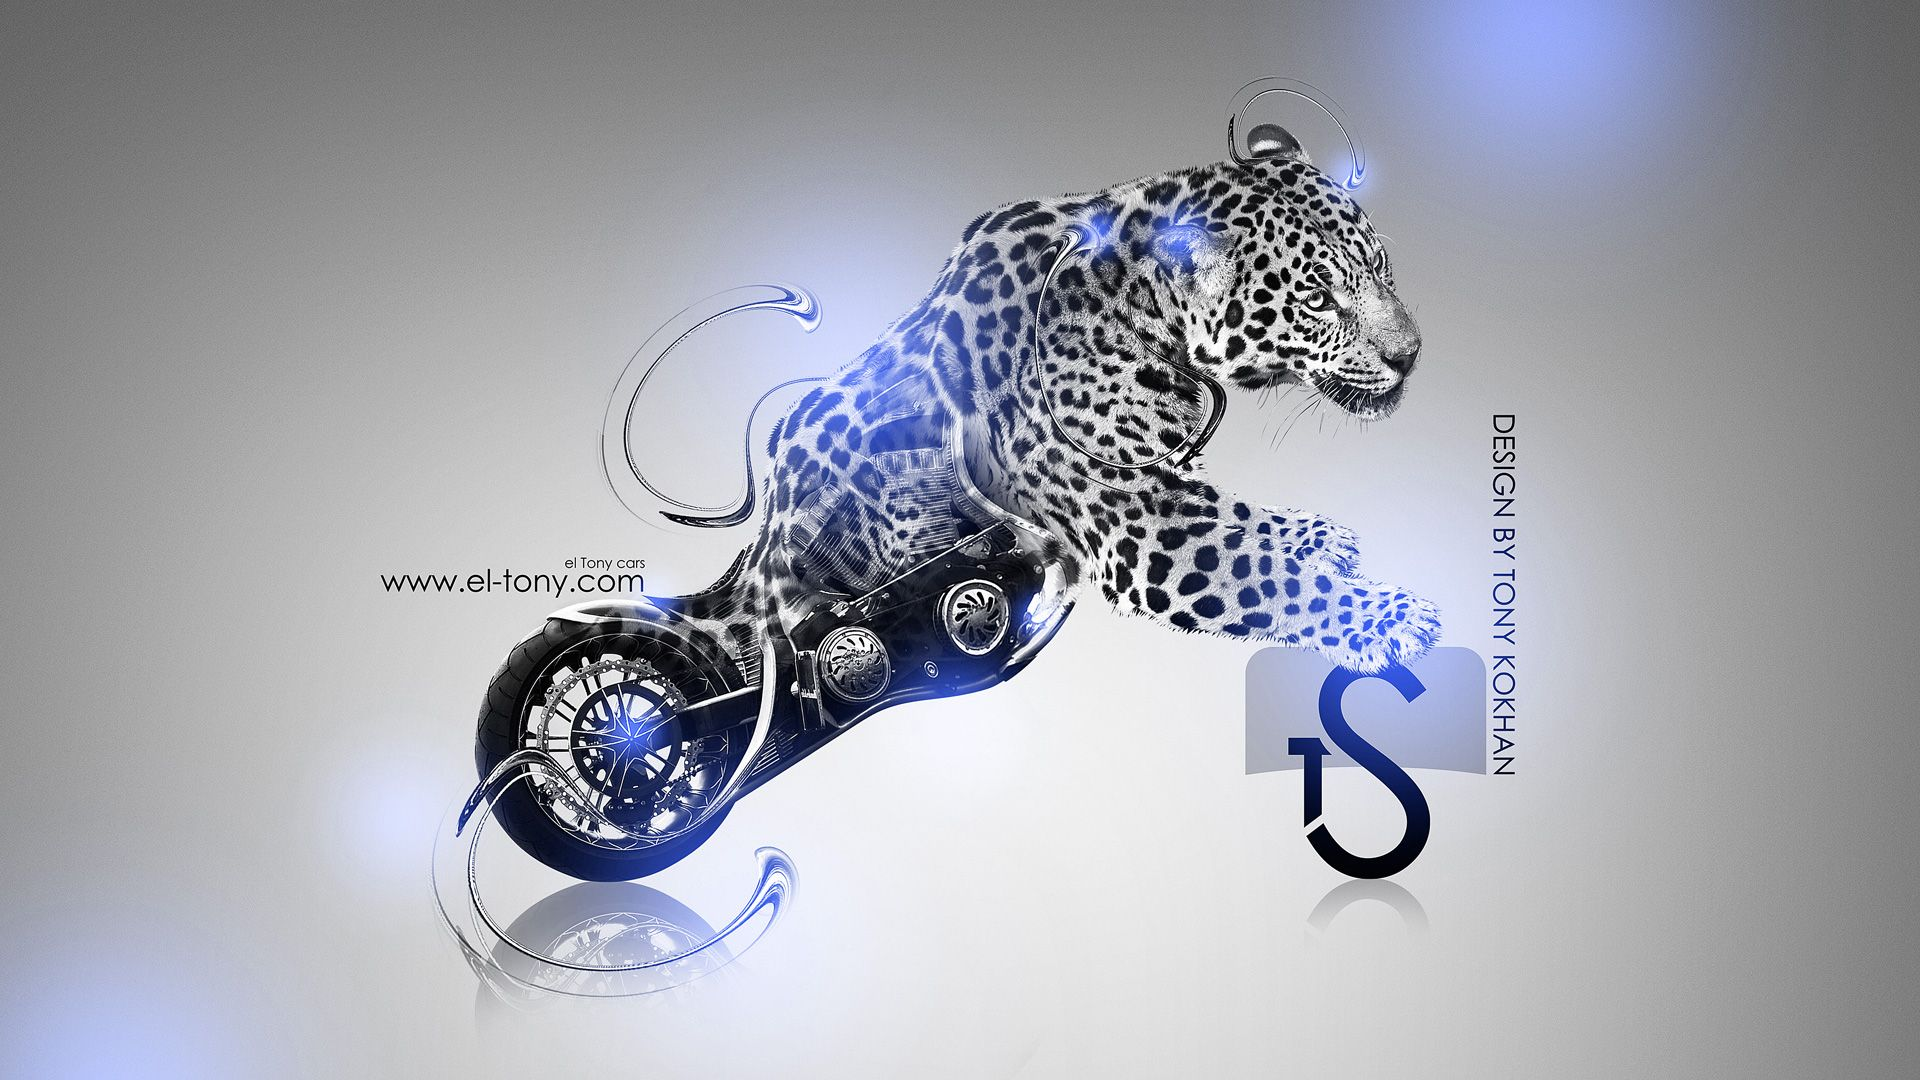 Marvelous Wallpaper Blue Neon Tigers | Harley Davidson Fantasy Tiger 2013 Yamaha Vmax  Tiger Plastic Bike 2014